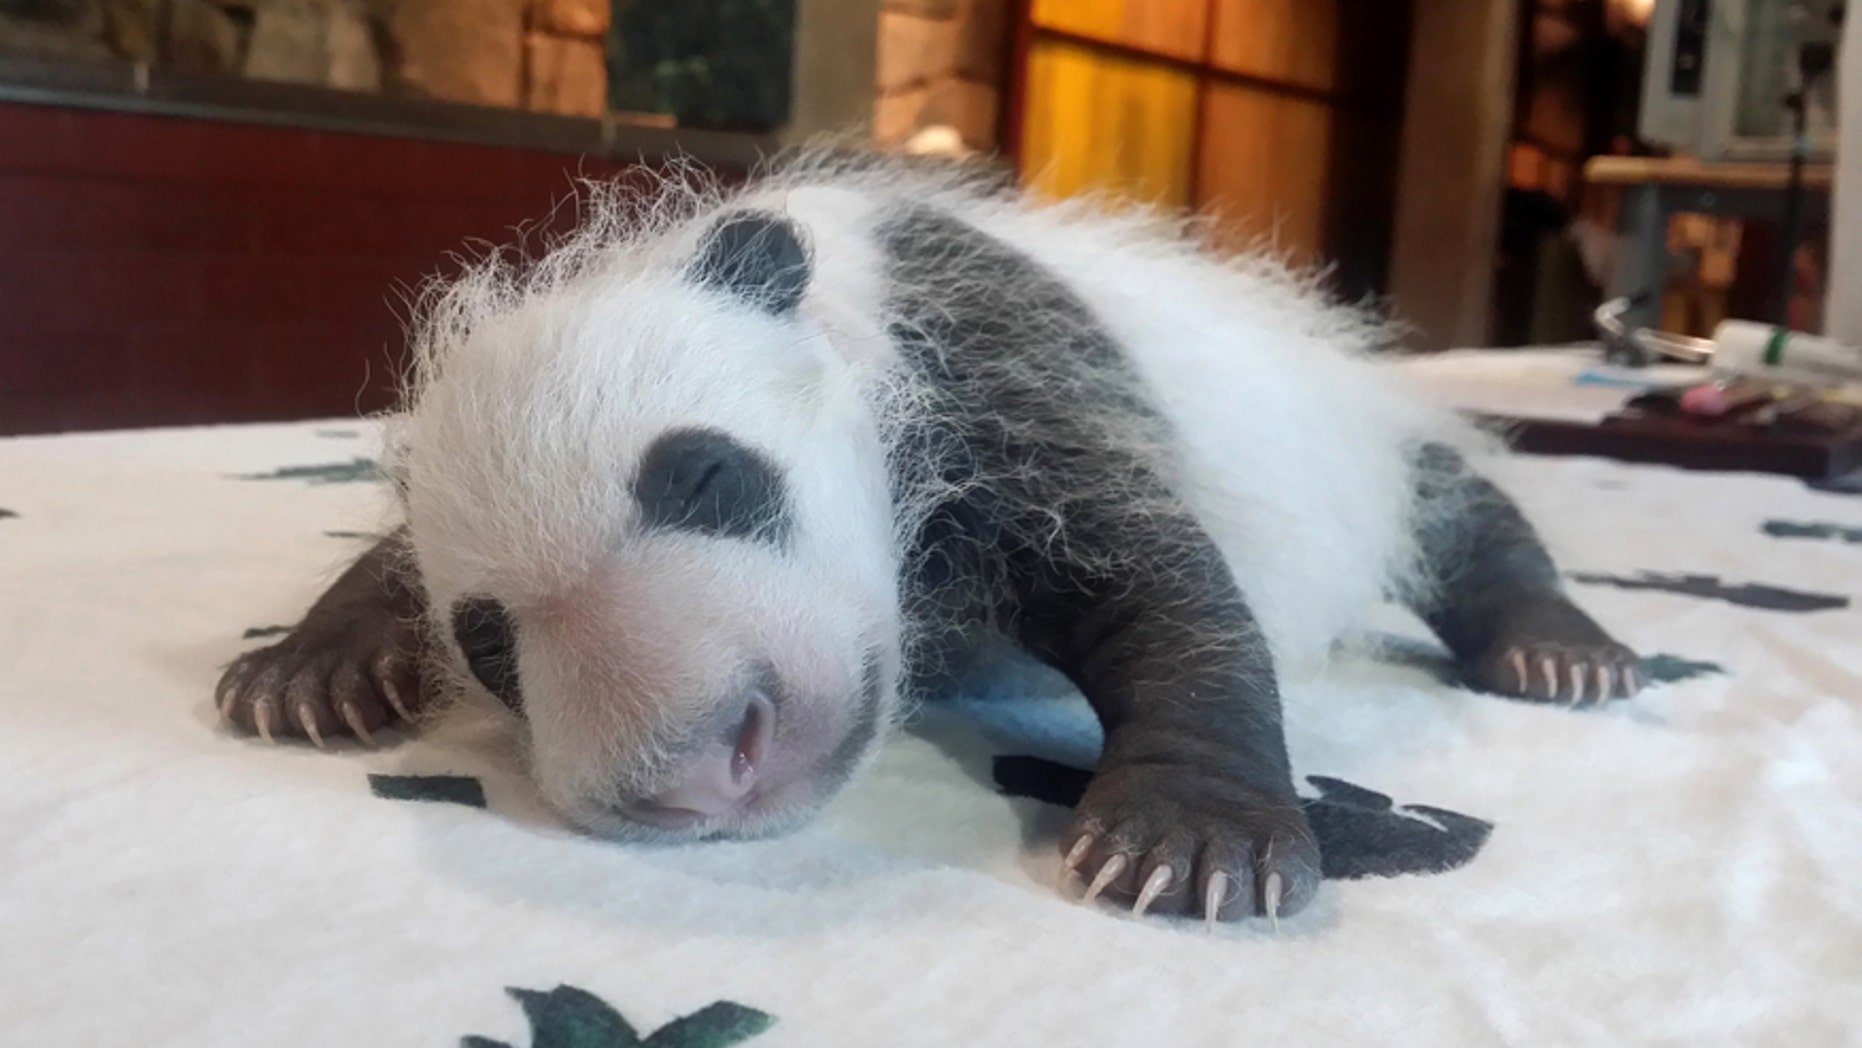 FILE - In this Sept. 14, 2015 file photo provided by the Smithsonian's National Zoo, Bei Bei, born Aug. 22, 2015, is seen in Washington as keepers weighed the giant panda cub.